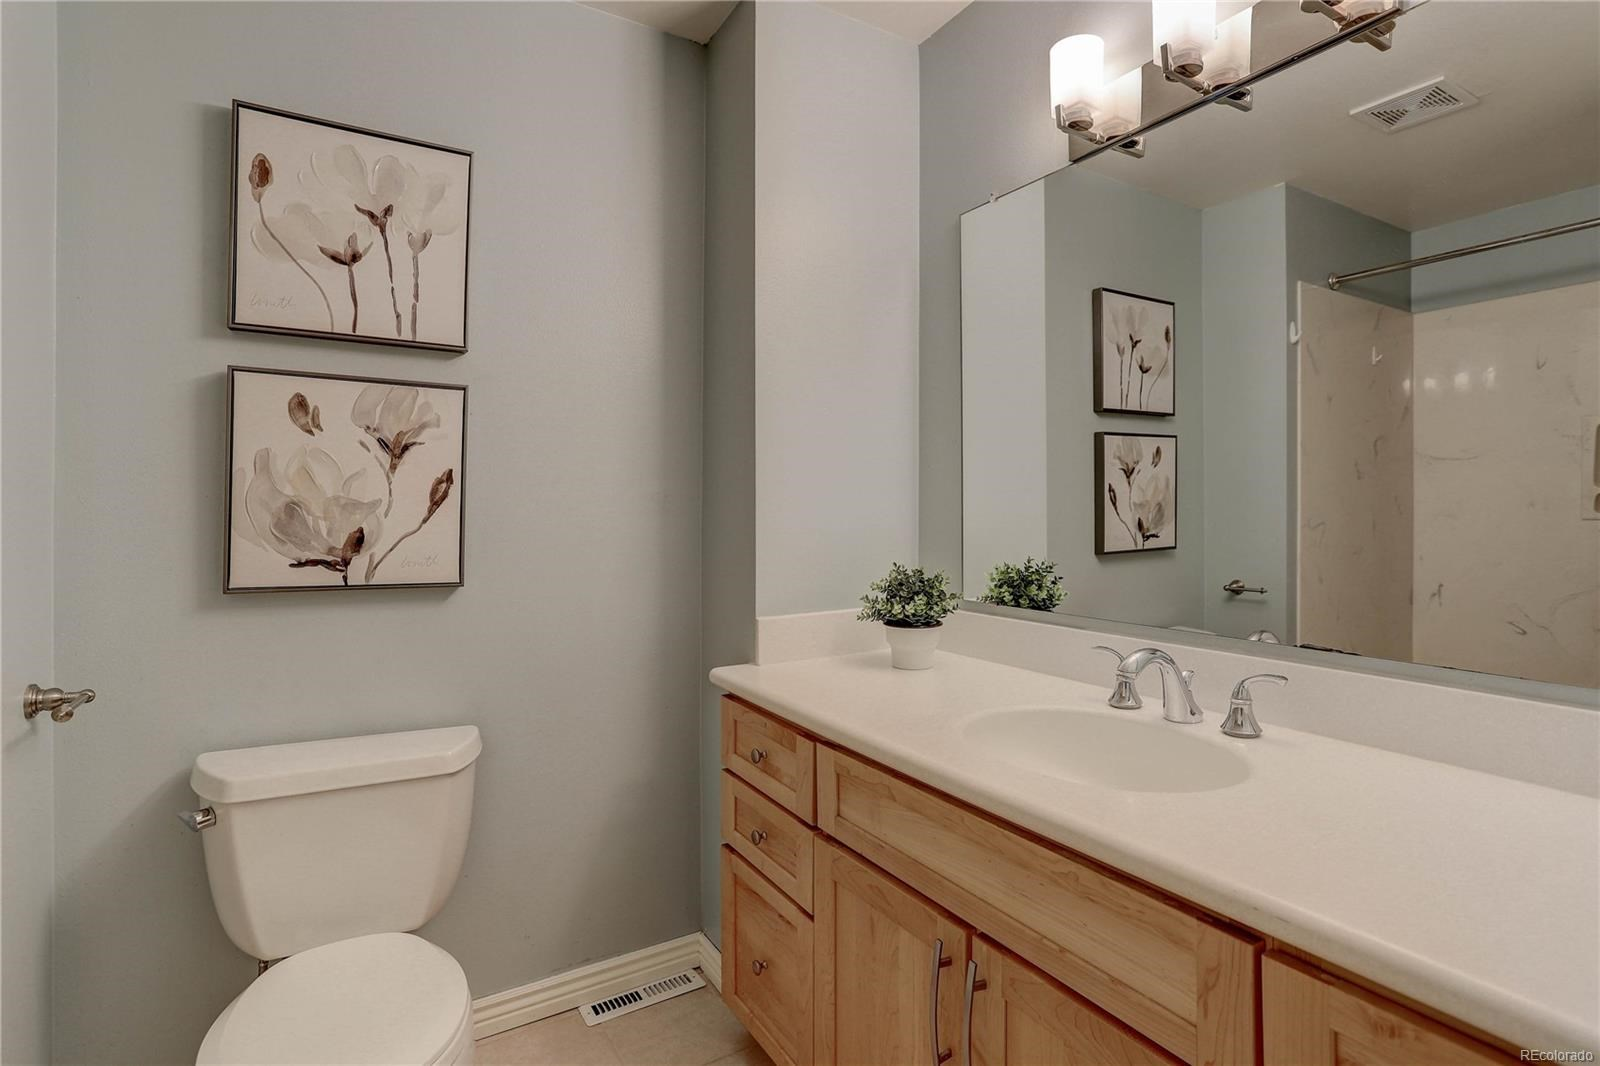 MLS# 2968148 - 24 - 2931 S Downing Street, Englewood, CO 80113